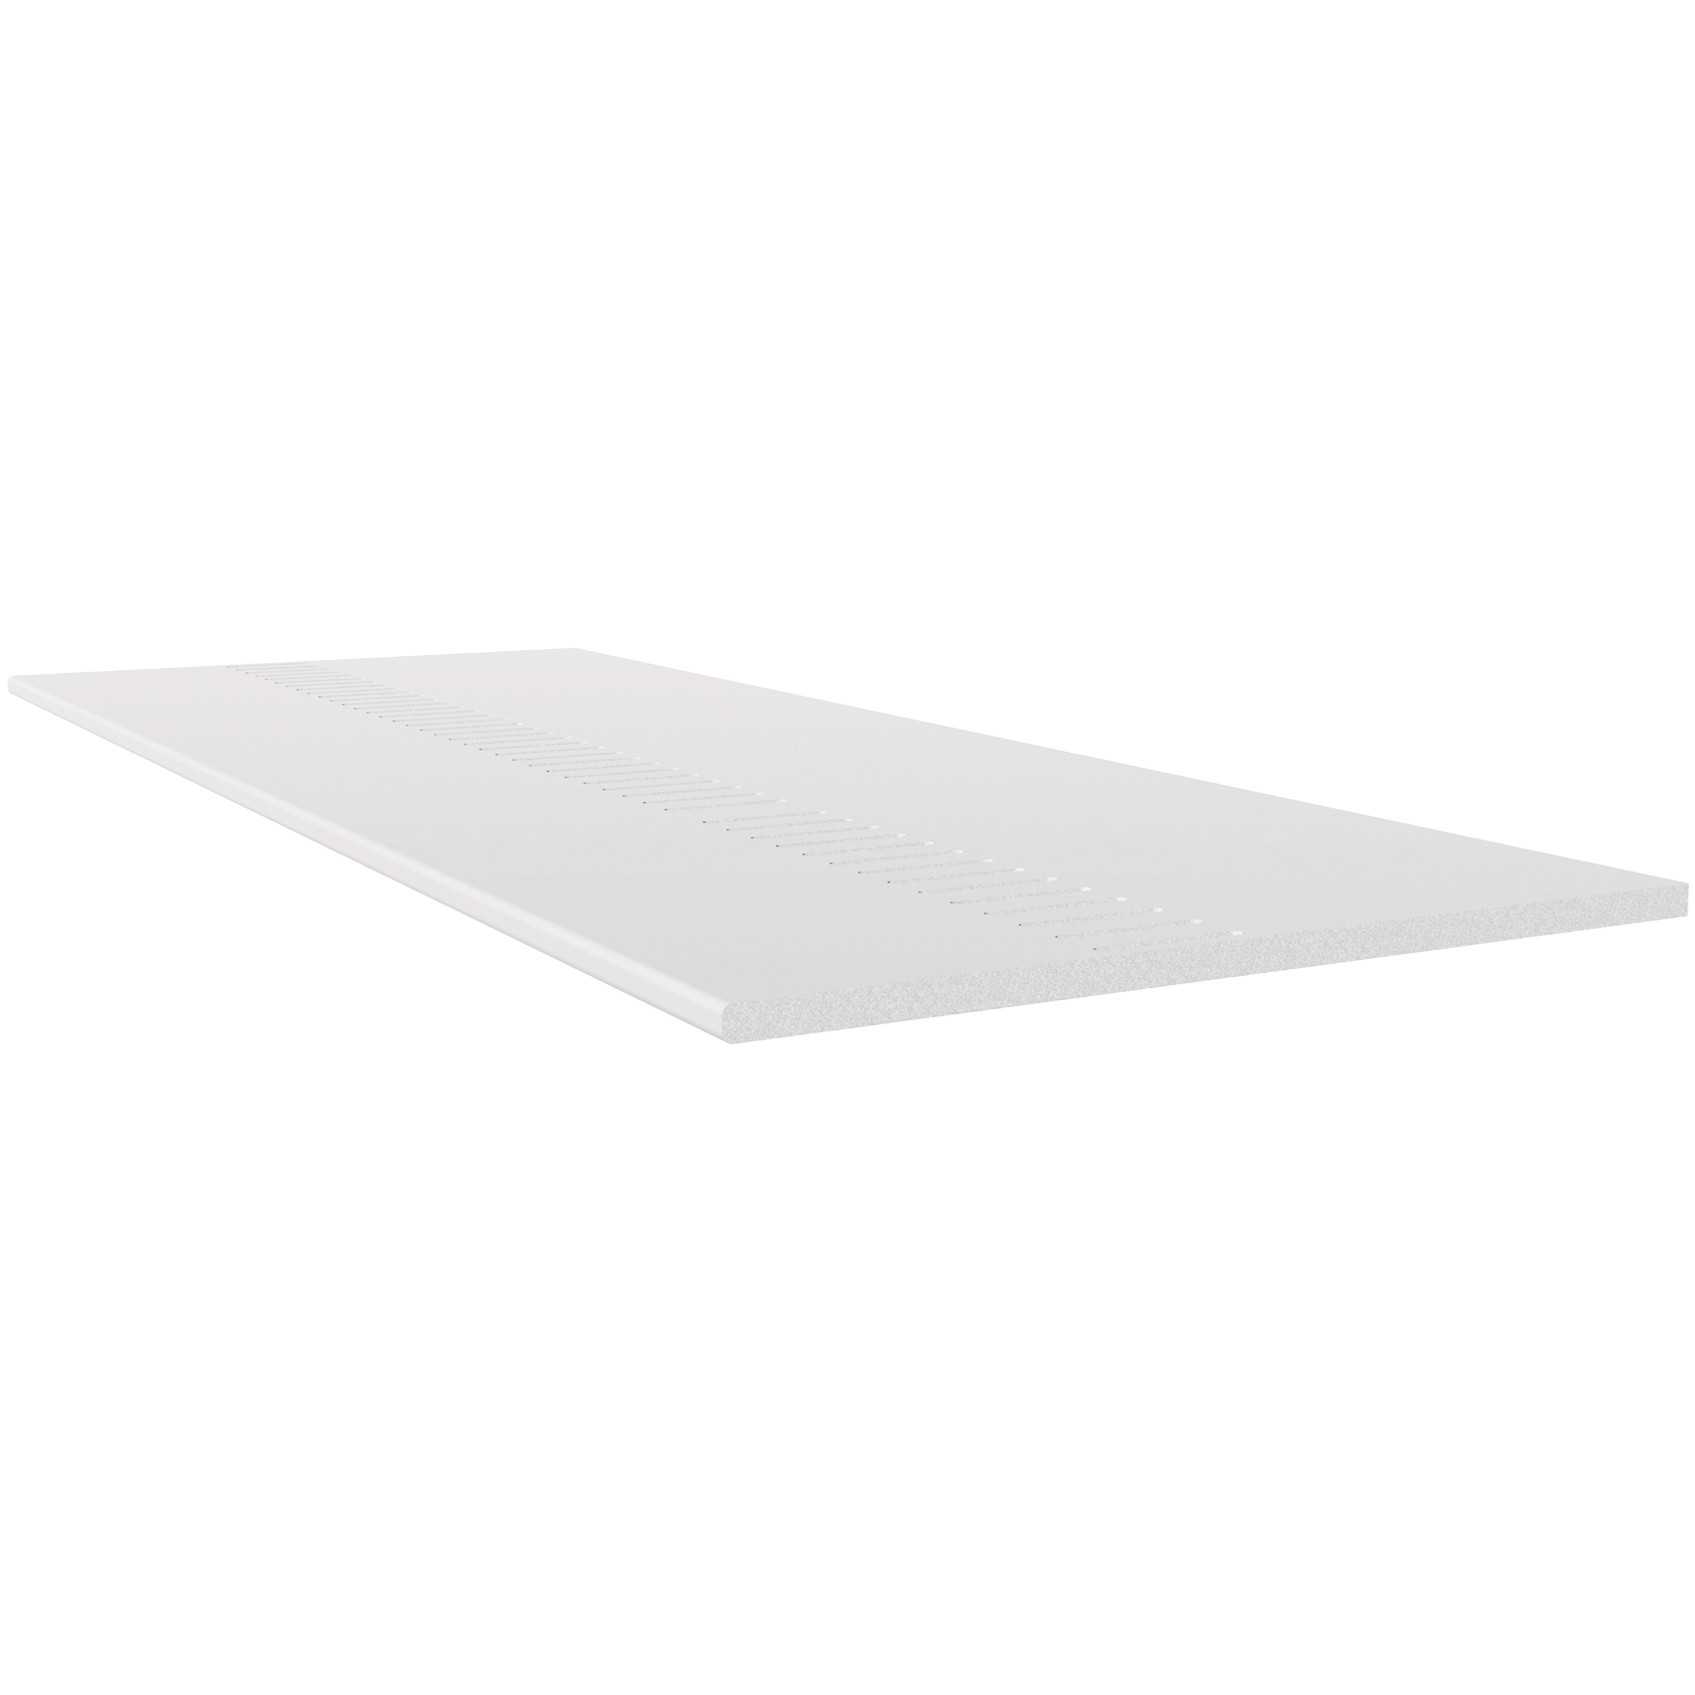 Freefoam Pre Vented 10mm Solid Soffit Board - White, 200mm, 5 metre